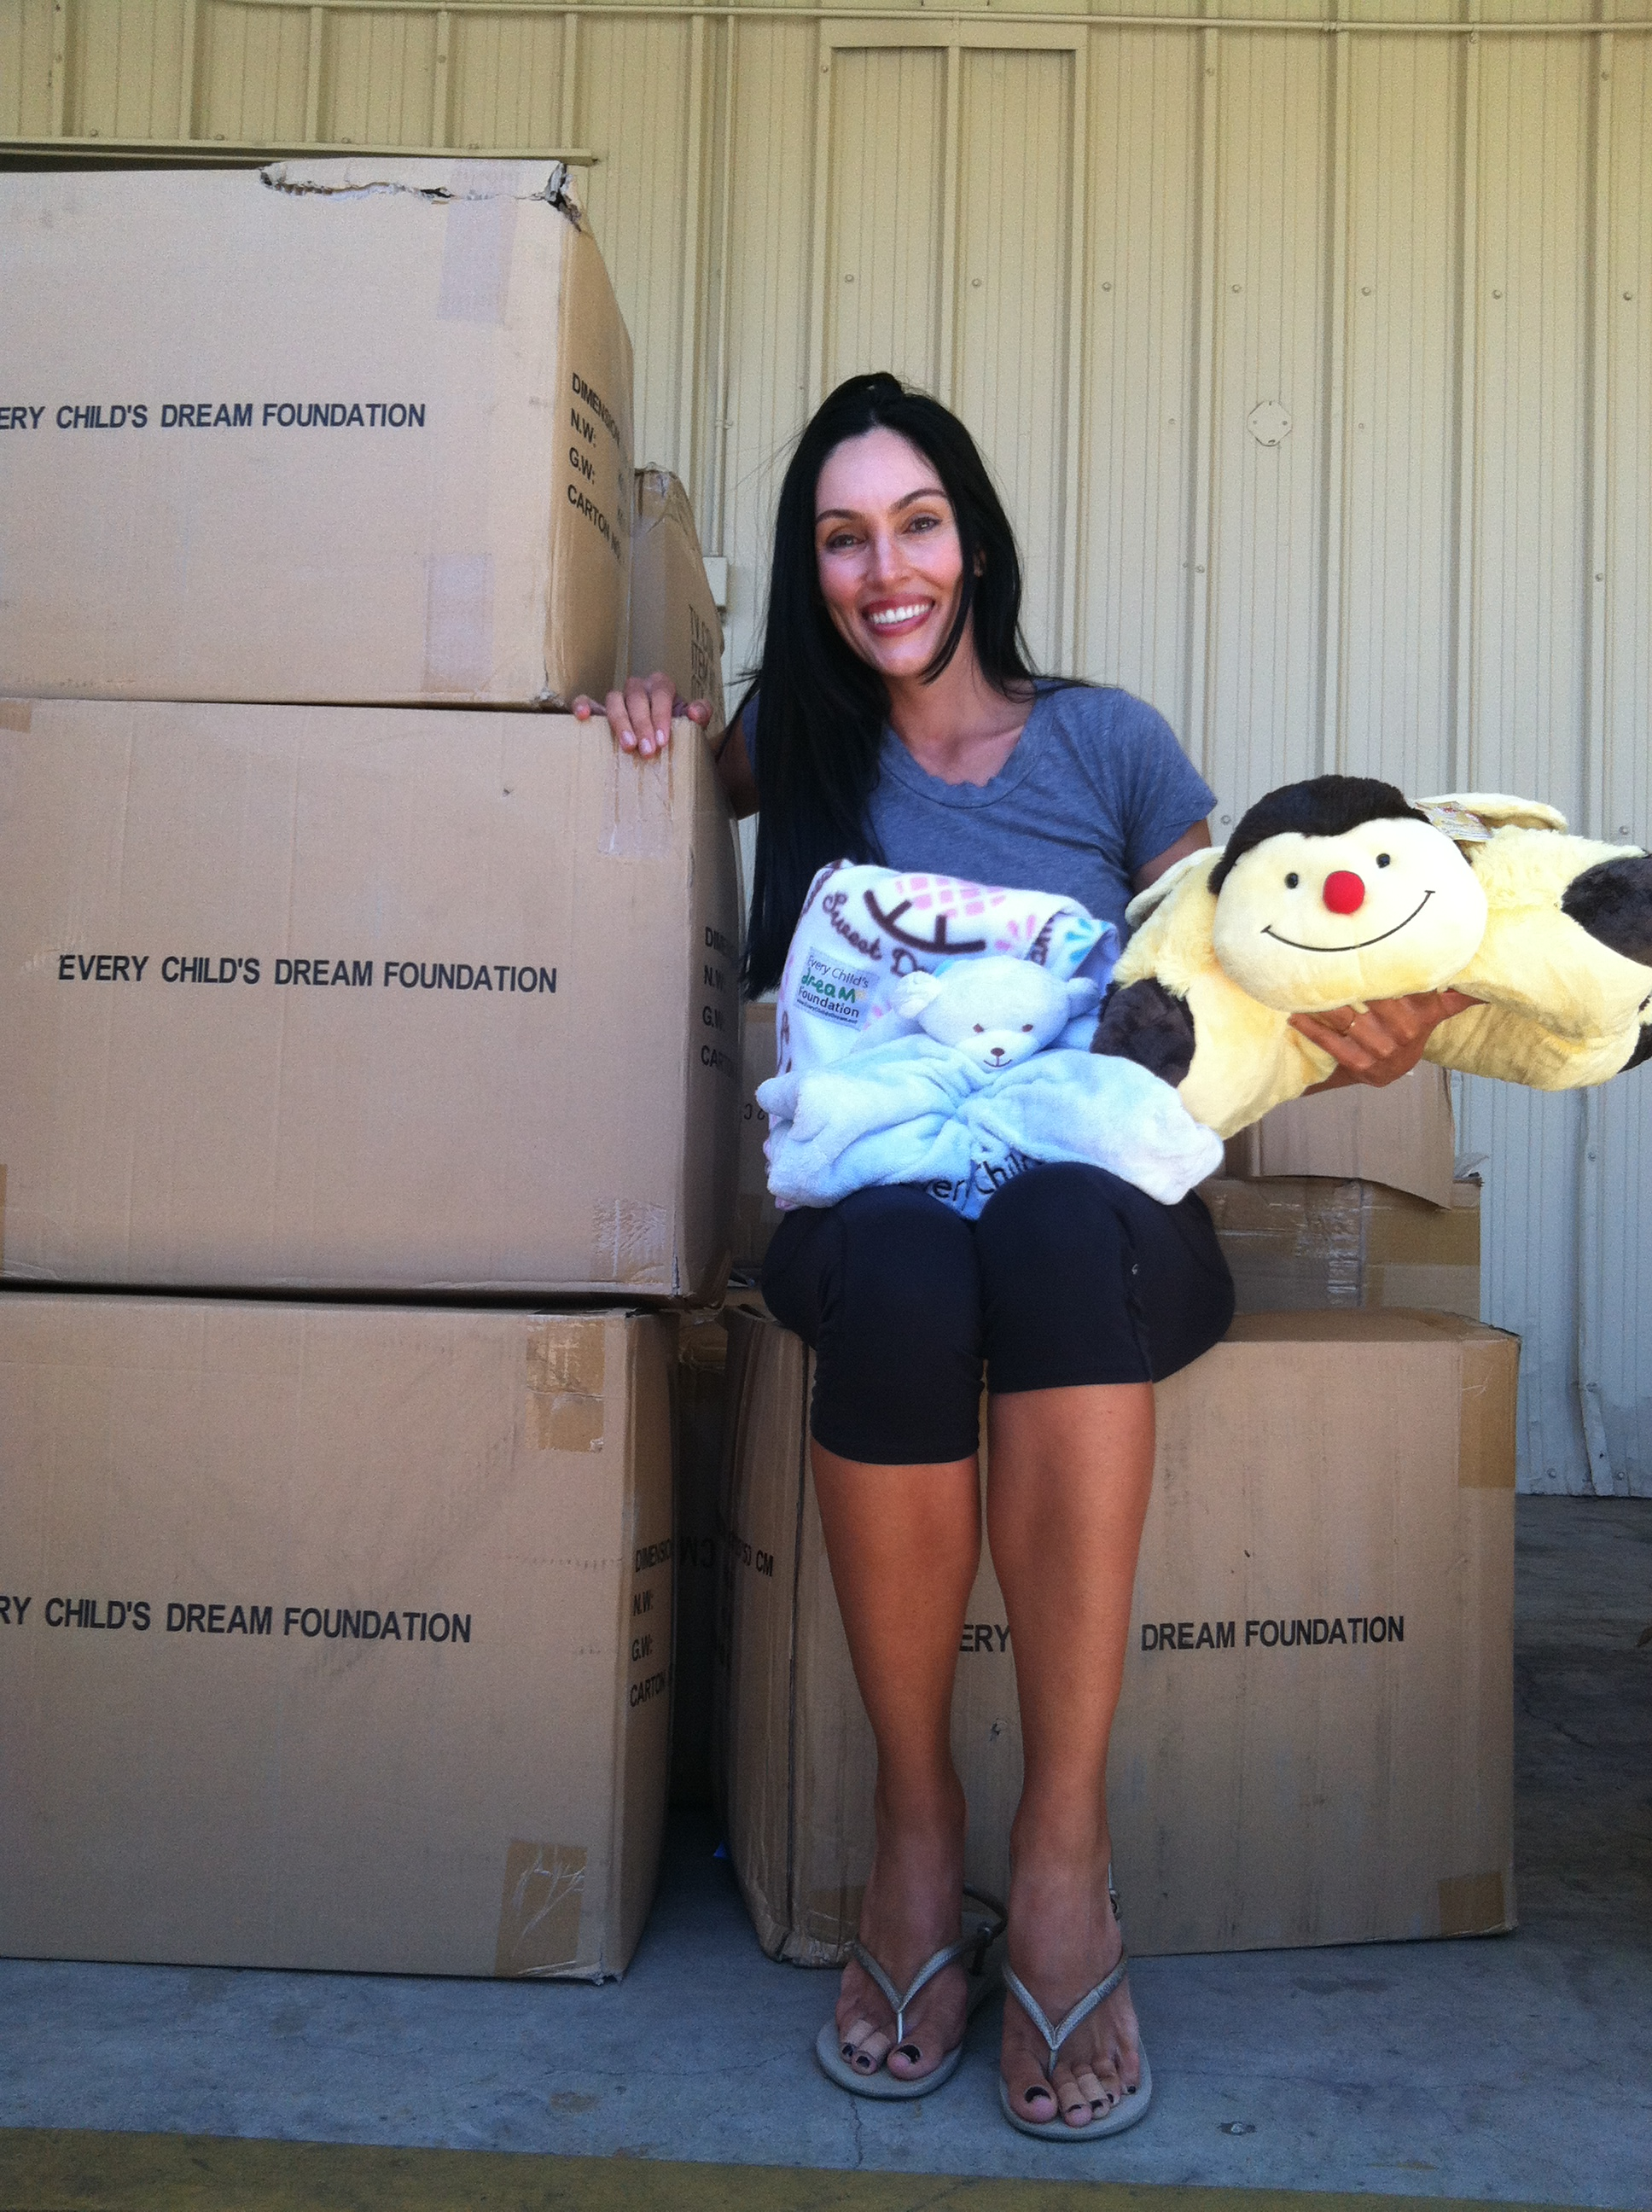 Every Child Cares Foundation Founder Drops off Boxes of Infant Blankets